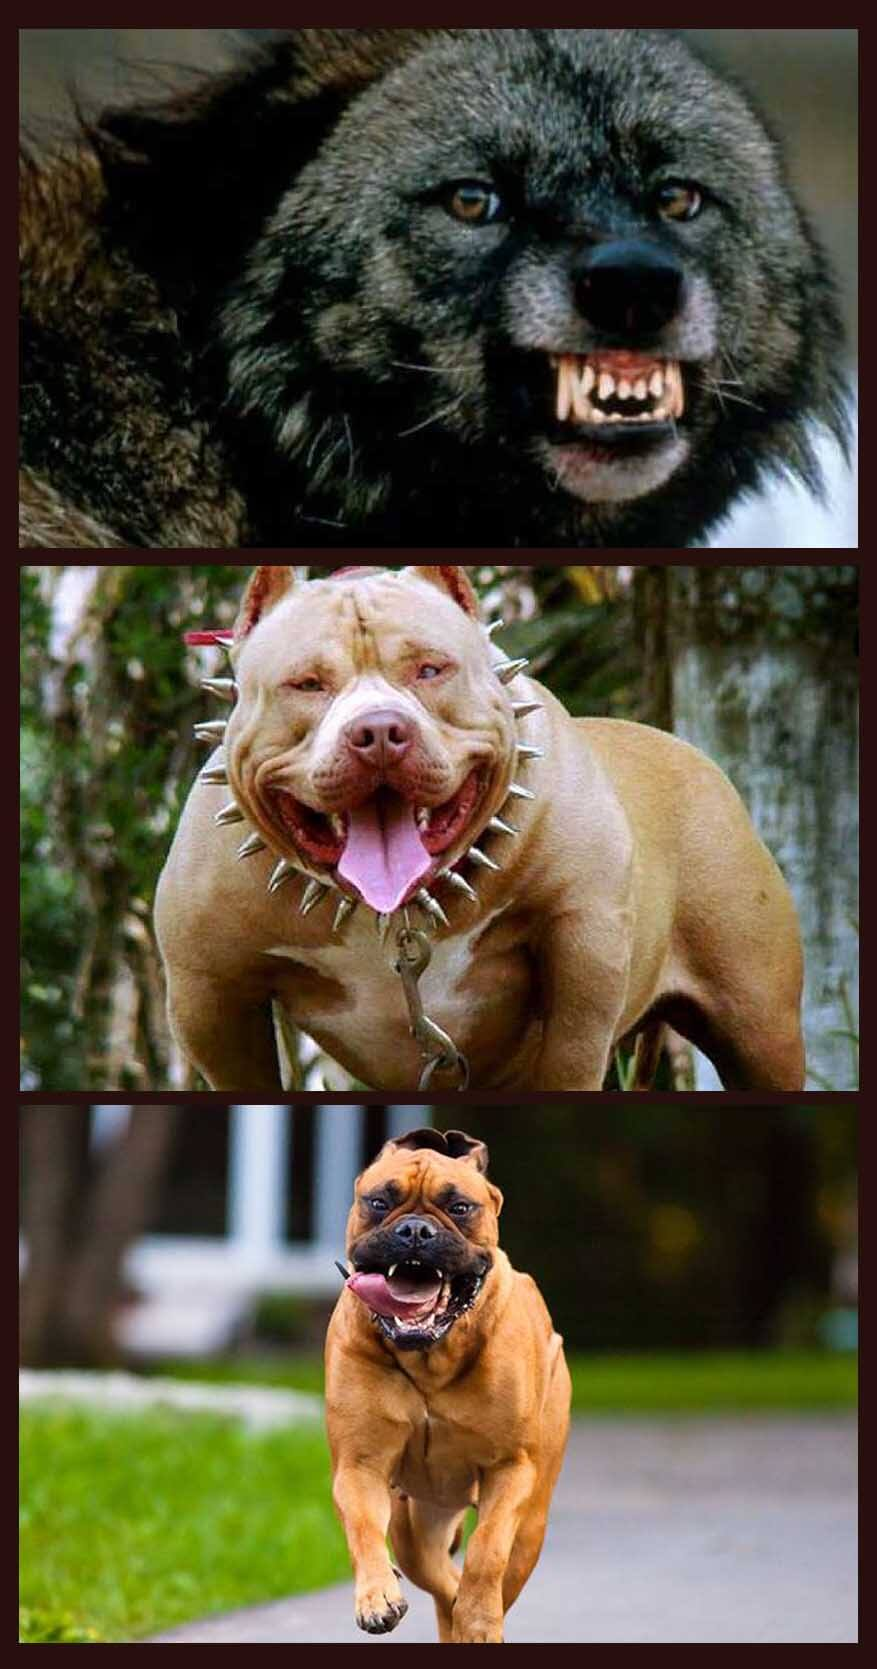 Top ten dangerous dog species that can cause severe damage by biting